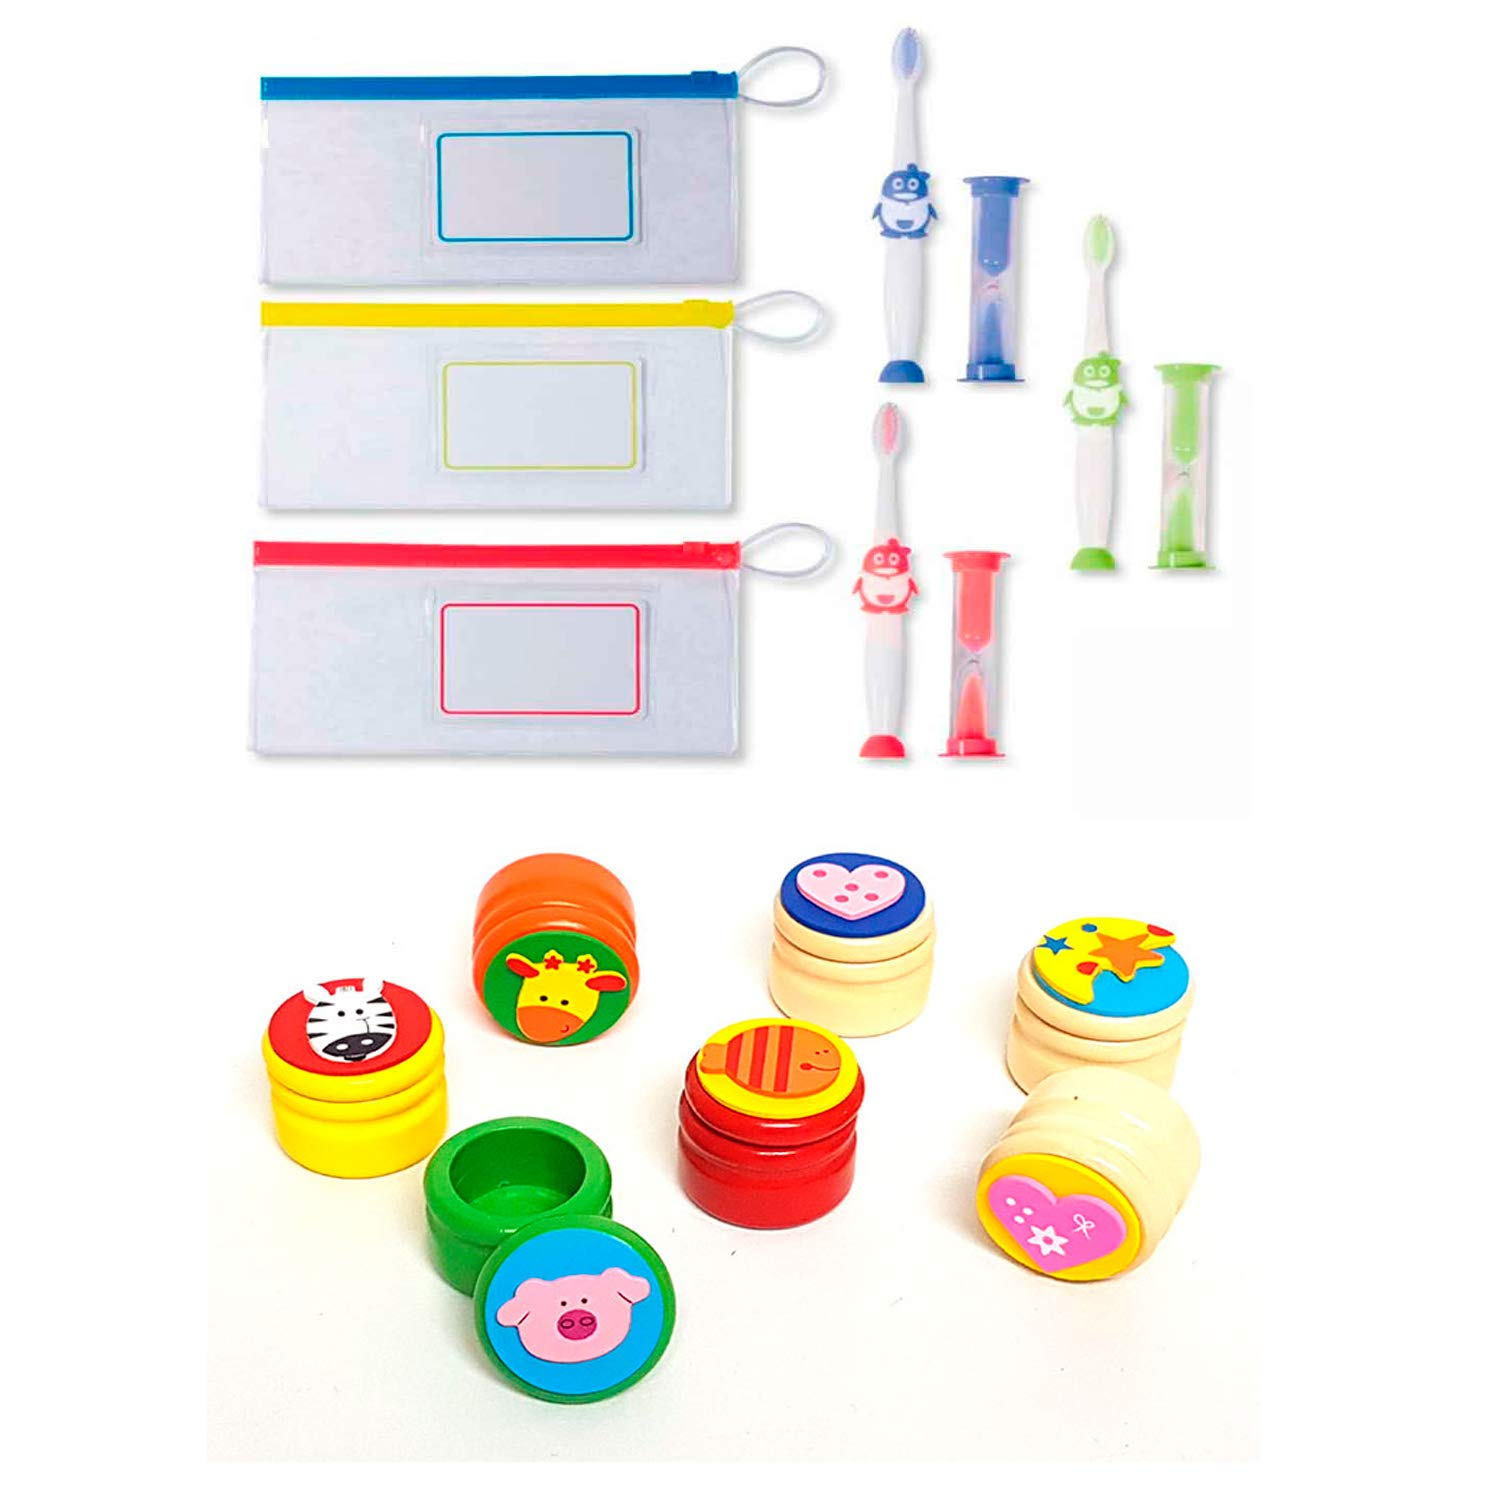 THE COLLECTION Lote de 12 Sets Cepillo de Dientes Infantil con ...